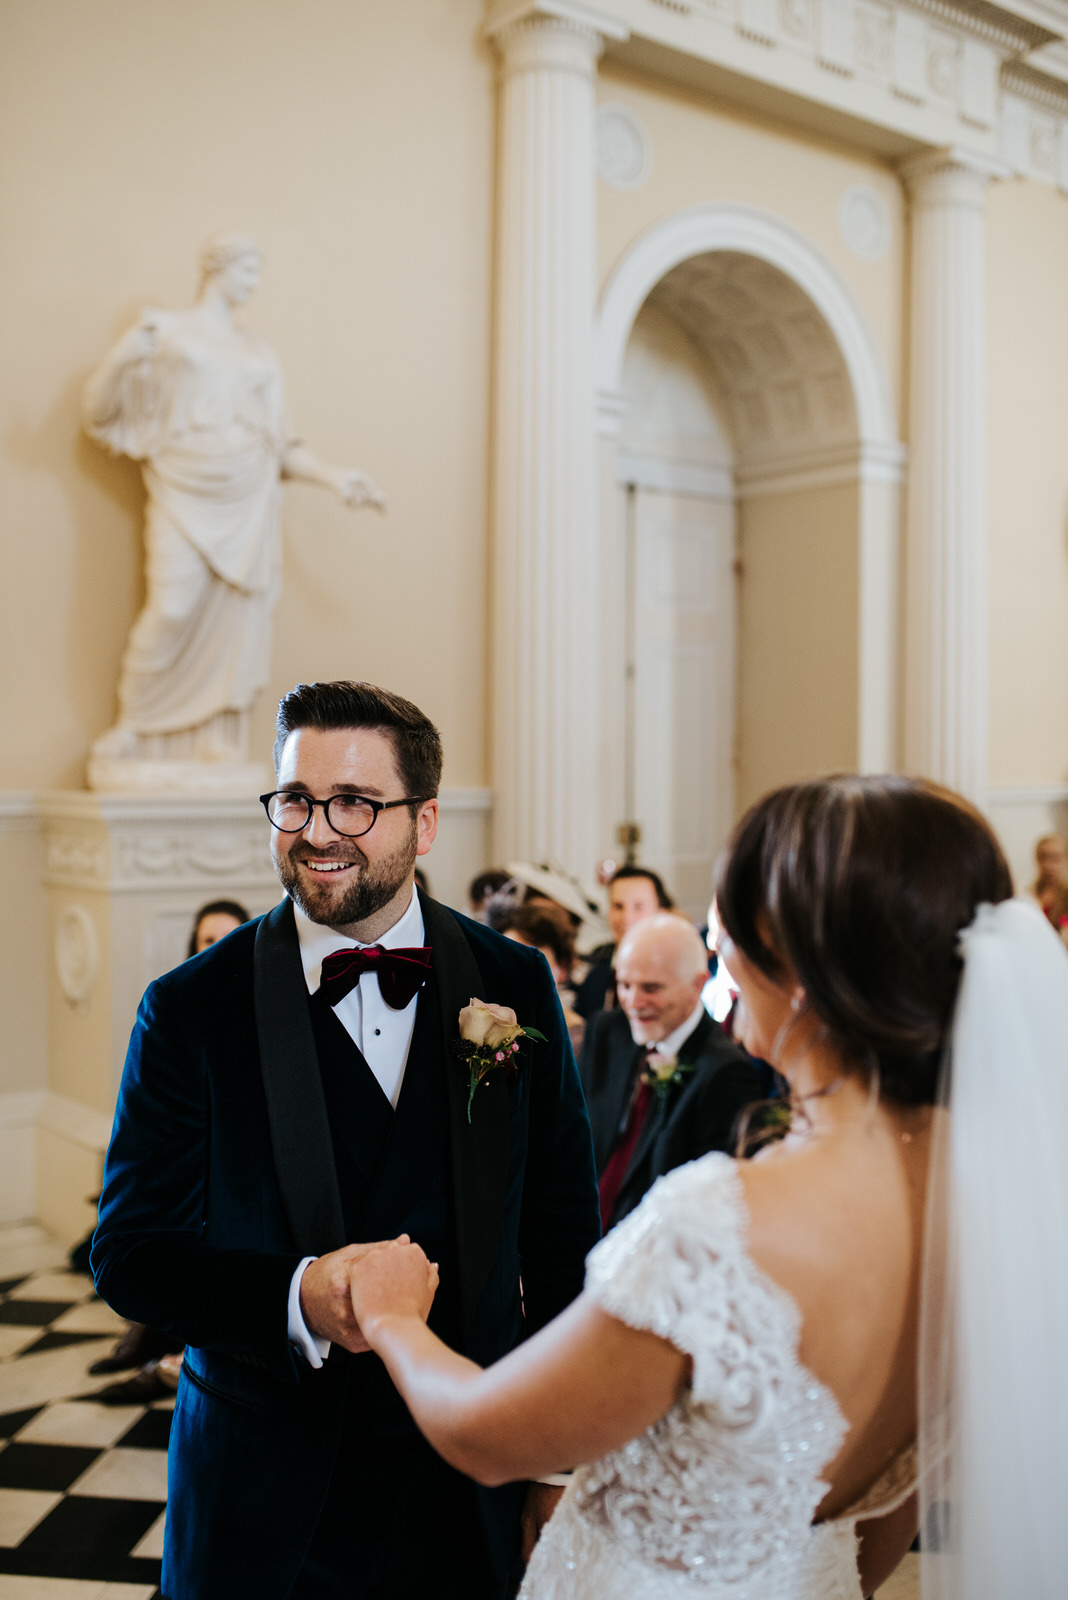 Groom smiles as he holds bride's hand while repeating wedding vows